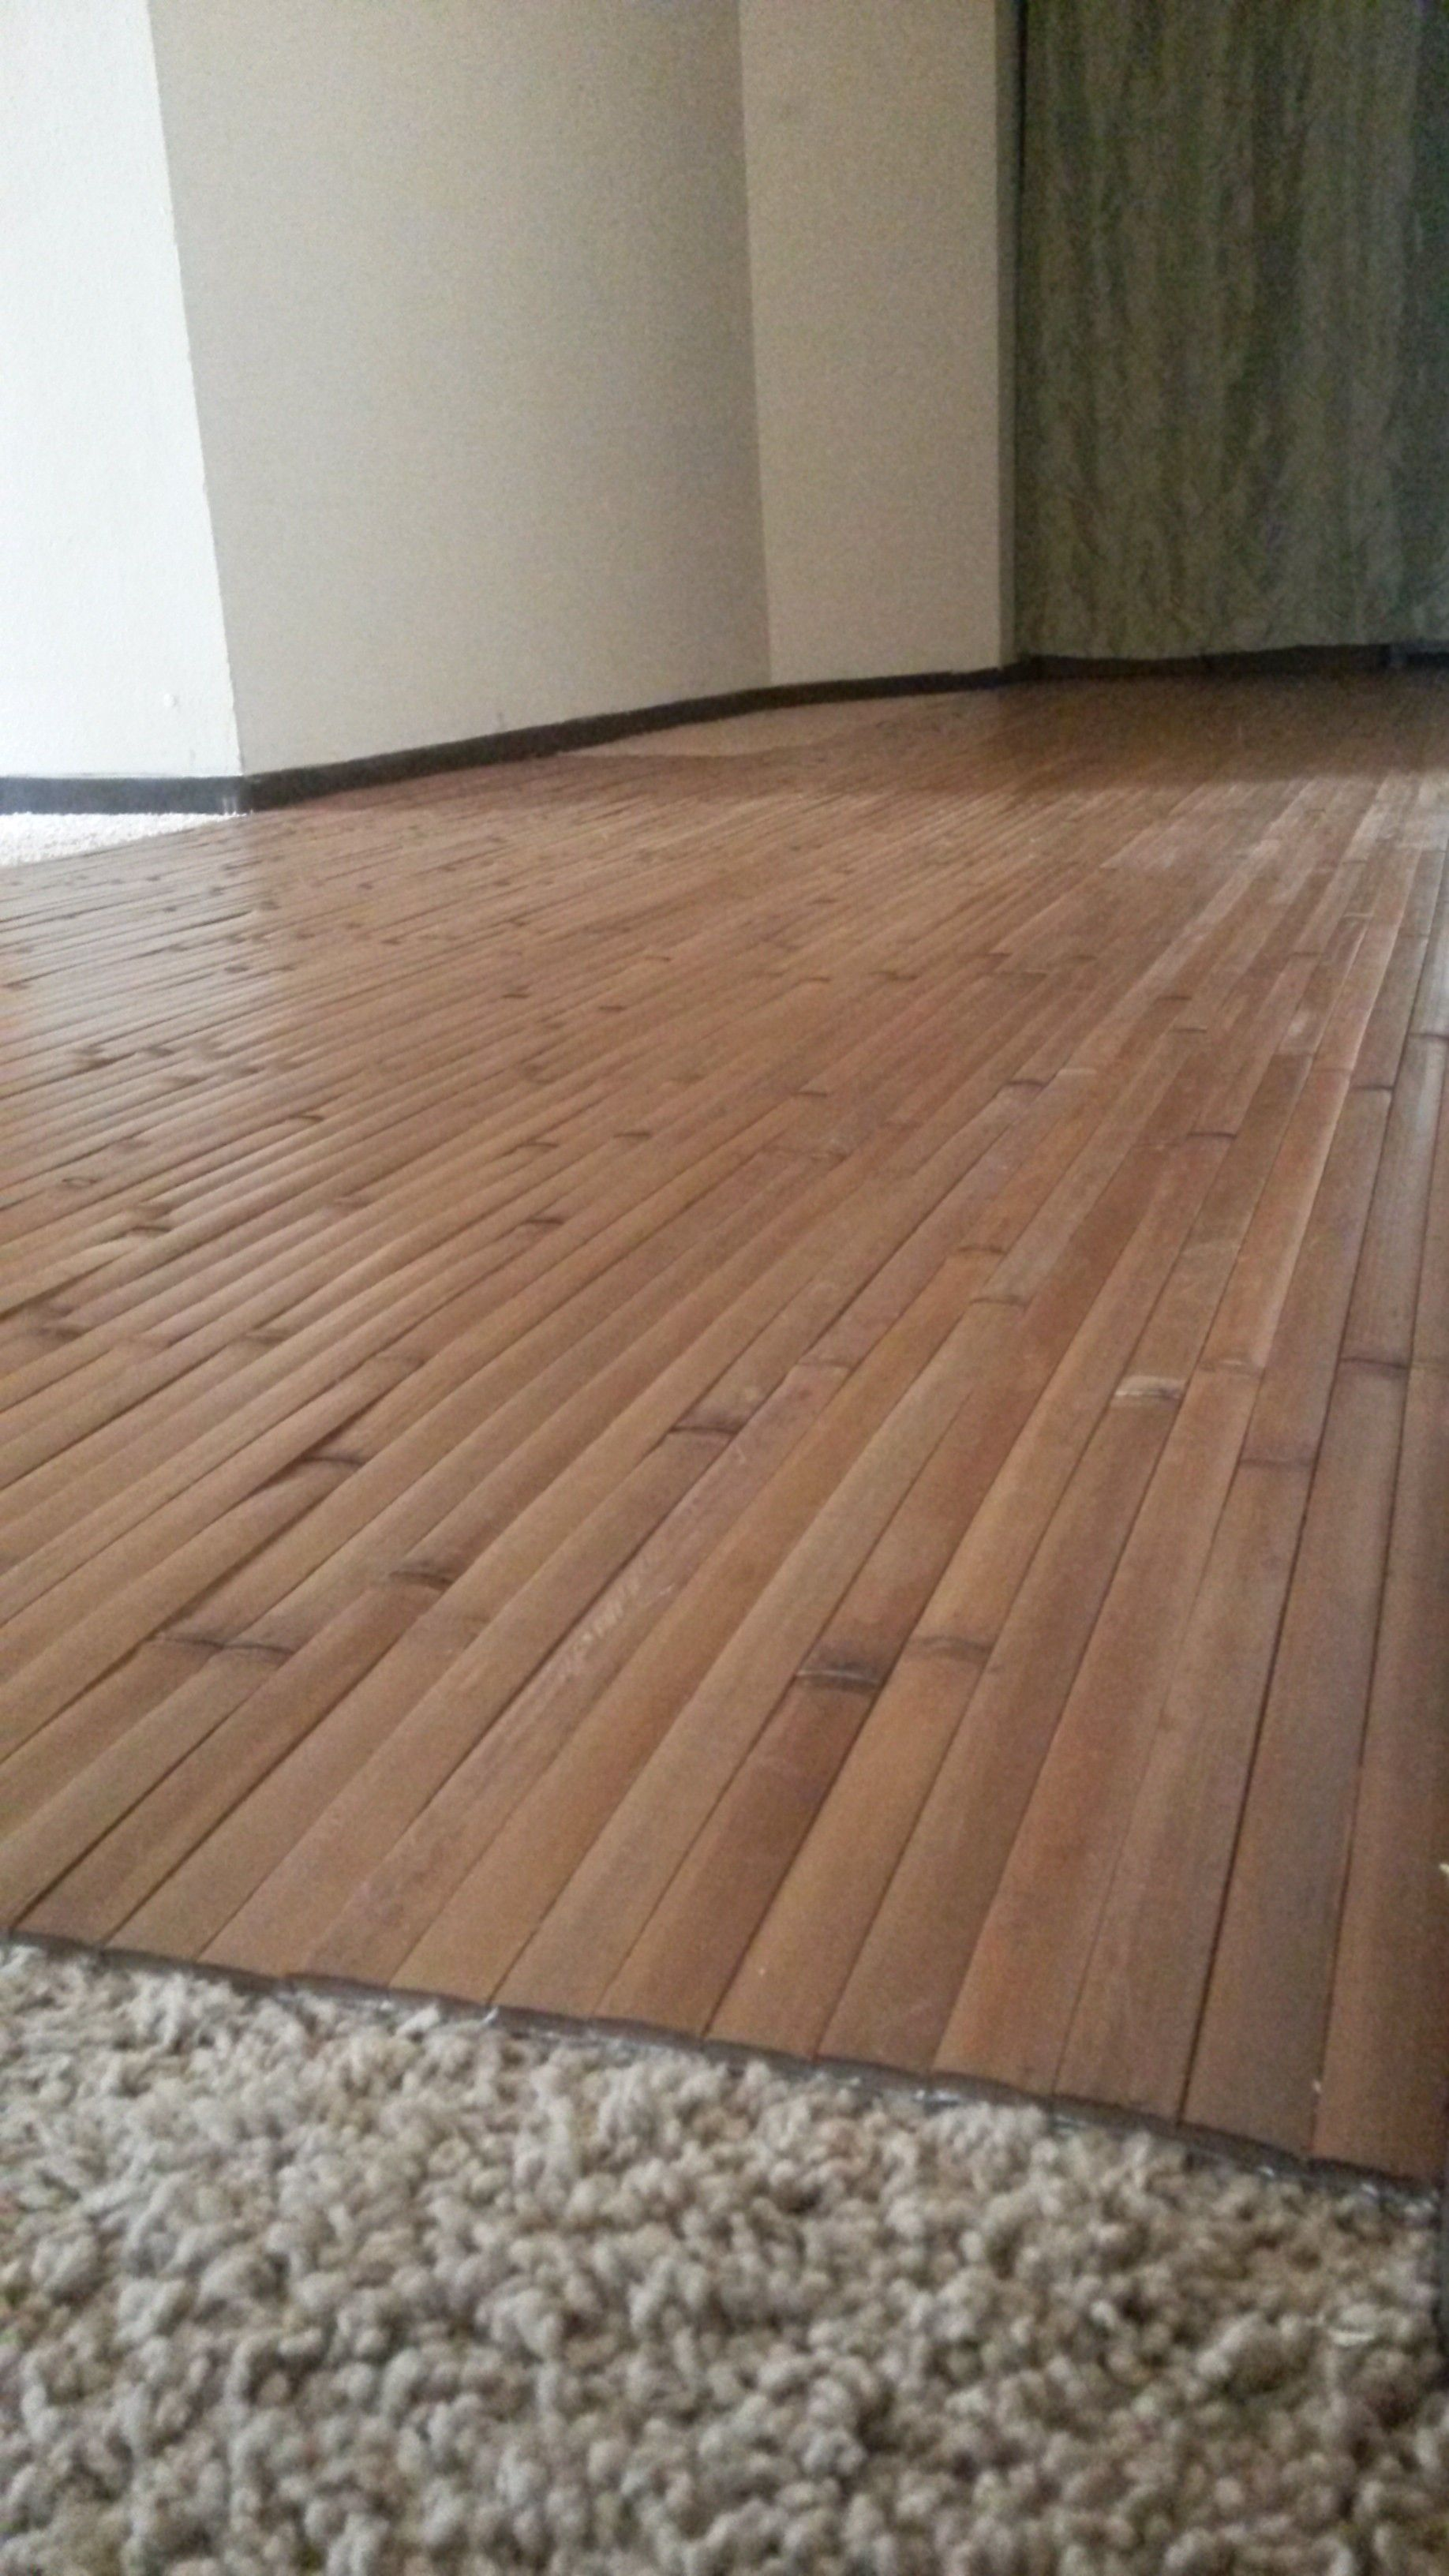 Temporary wood flooring over tile httpdreamhomesbyrob temporary wood flooring over tile dailygadgetfo Image collections